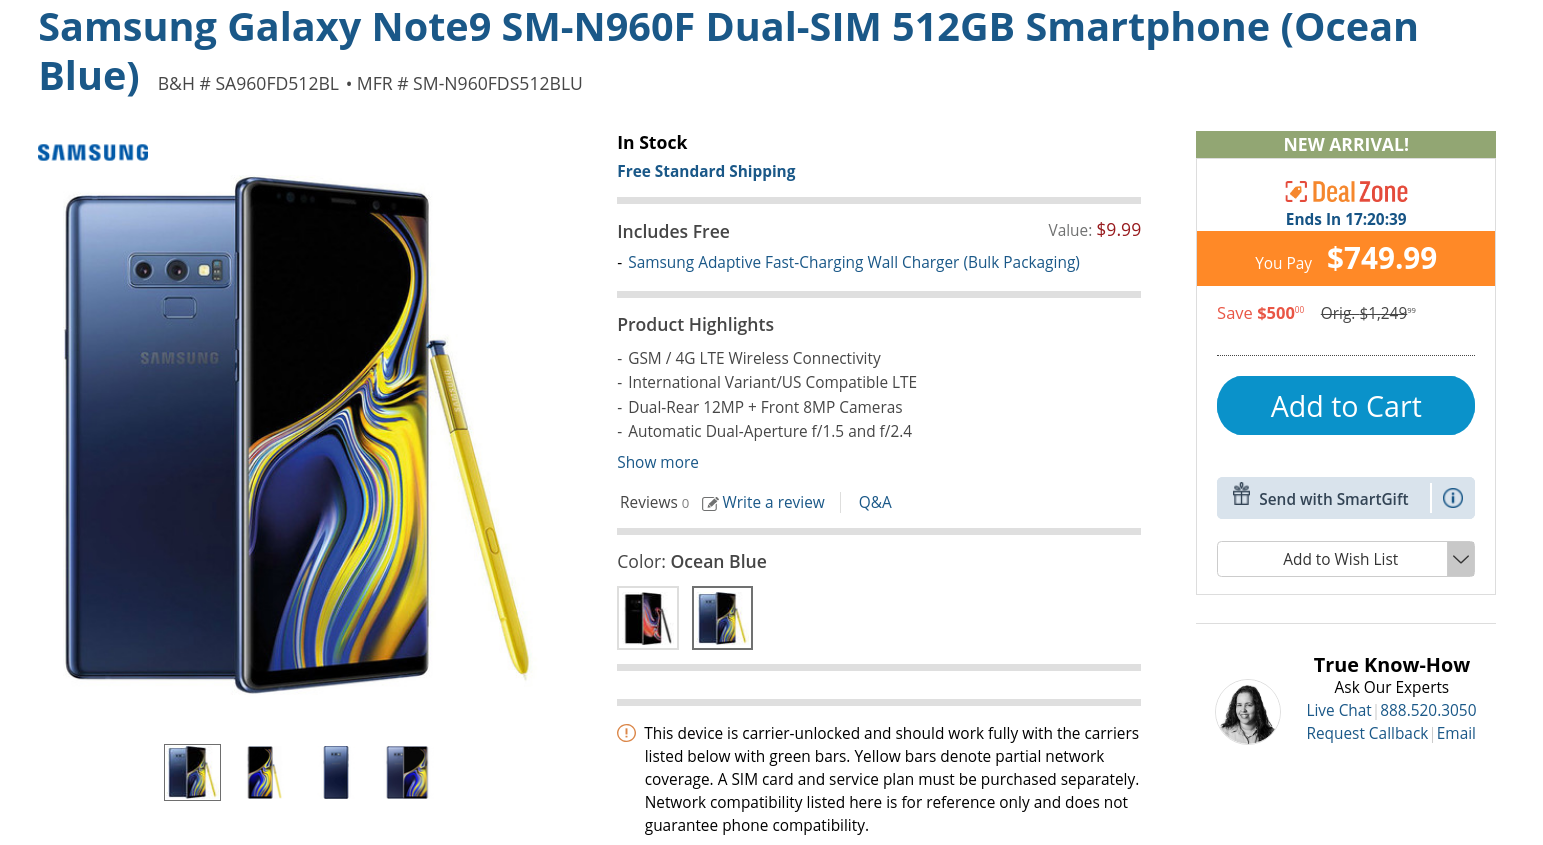 Today only: 512GB dual-SIM Samsung Galaxy Note9 is $750